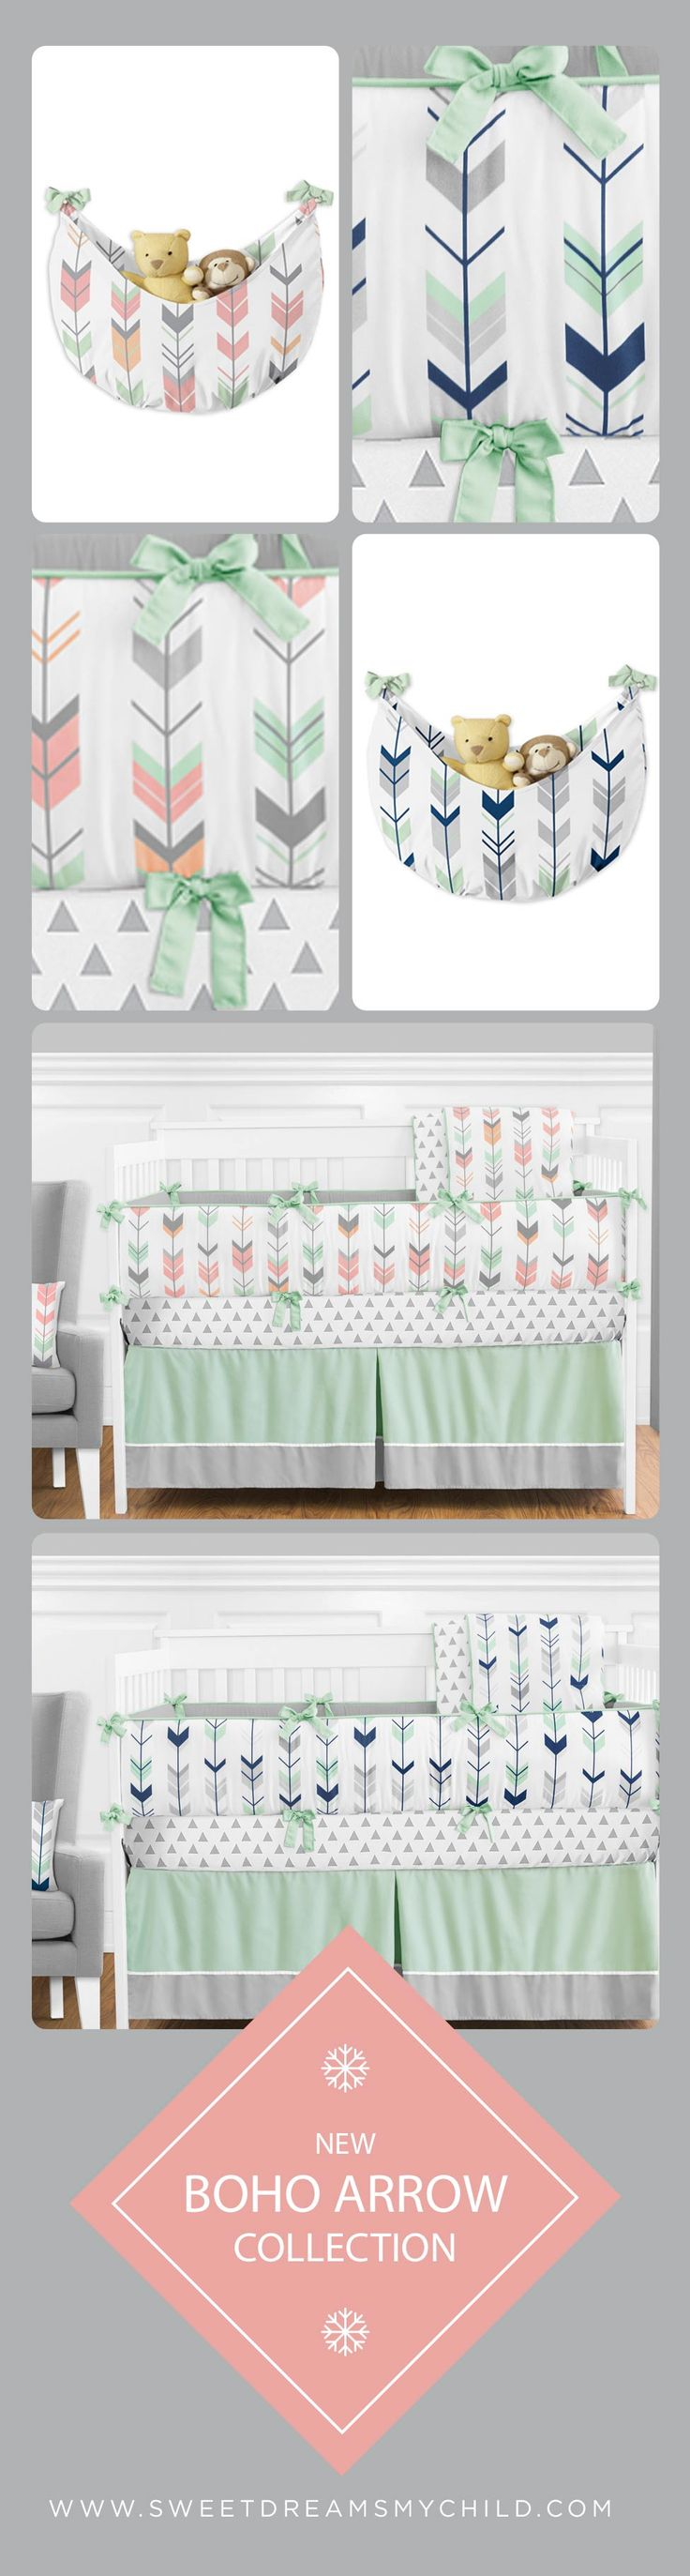 The prettiest Boho Arrow Tribal baby bedding collections in mint, coral, navy and grey.